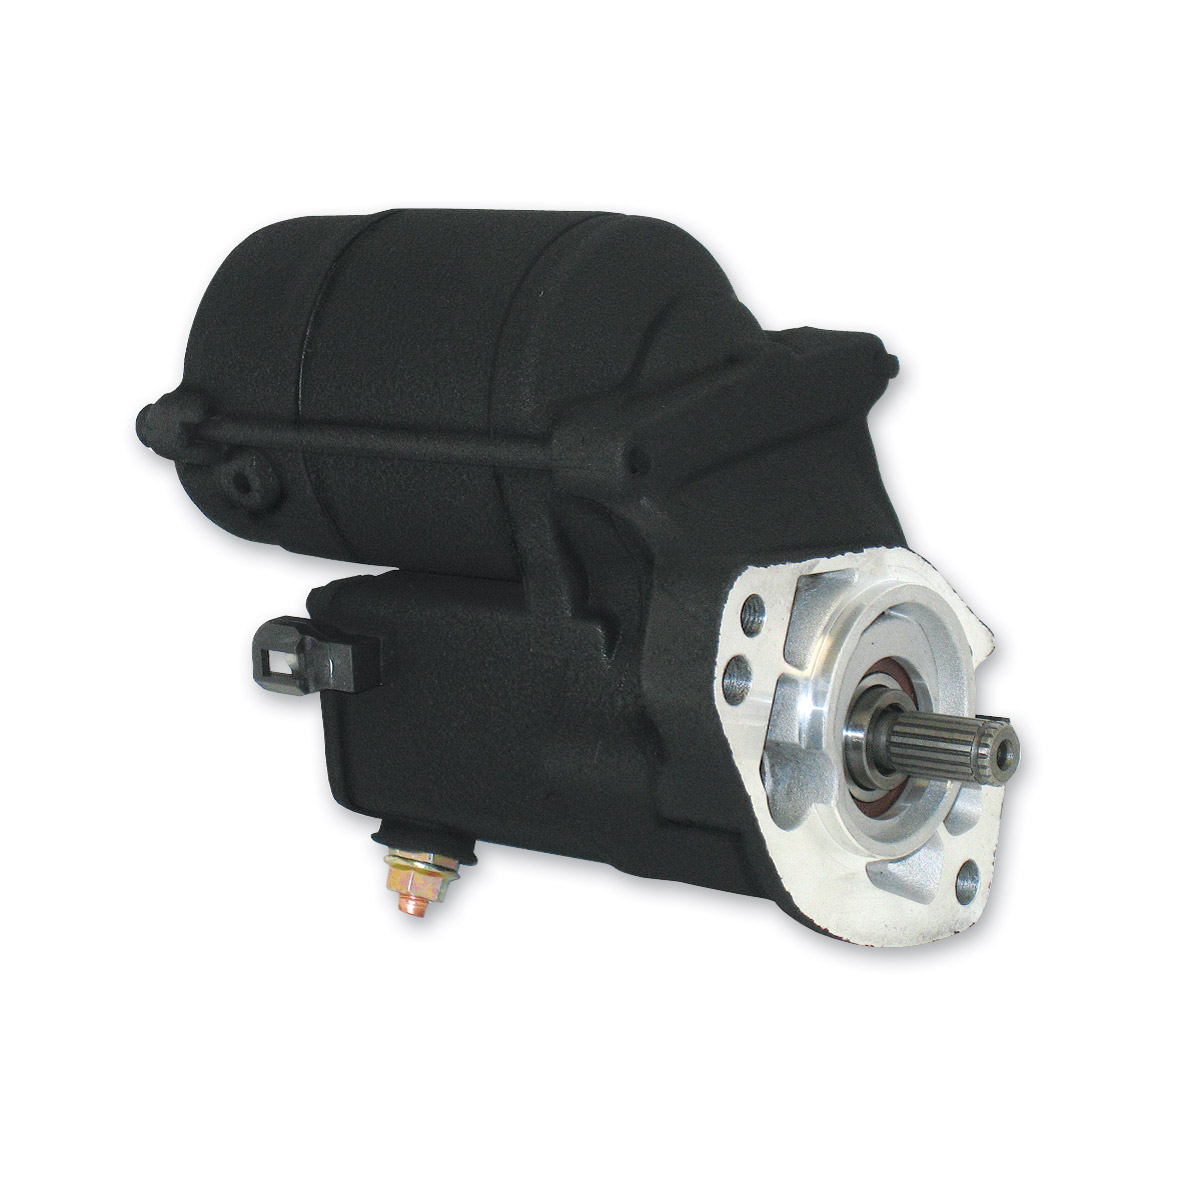 Motorcycle Electric Suppliers Black, 1.4 kW High Torque Starter